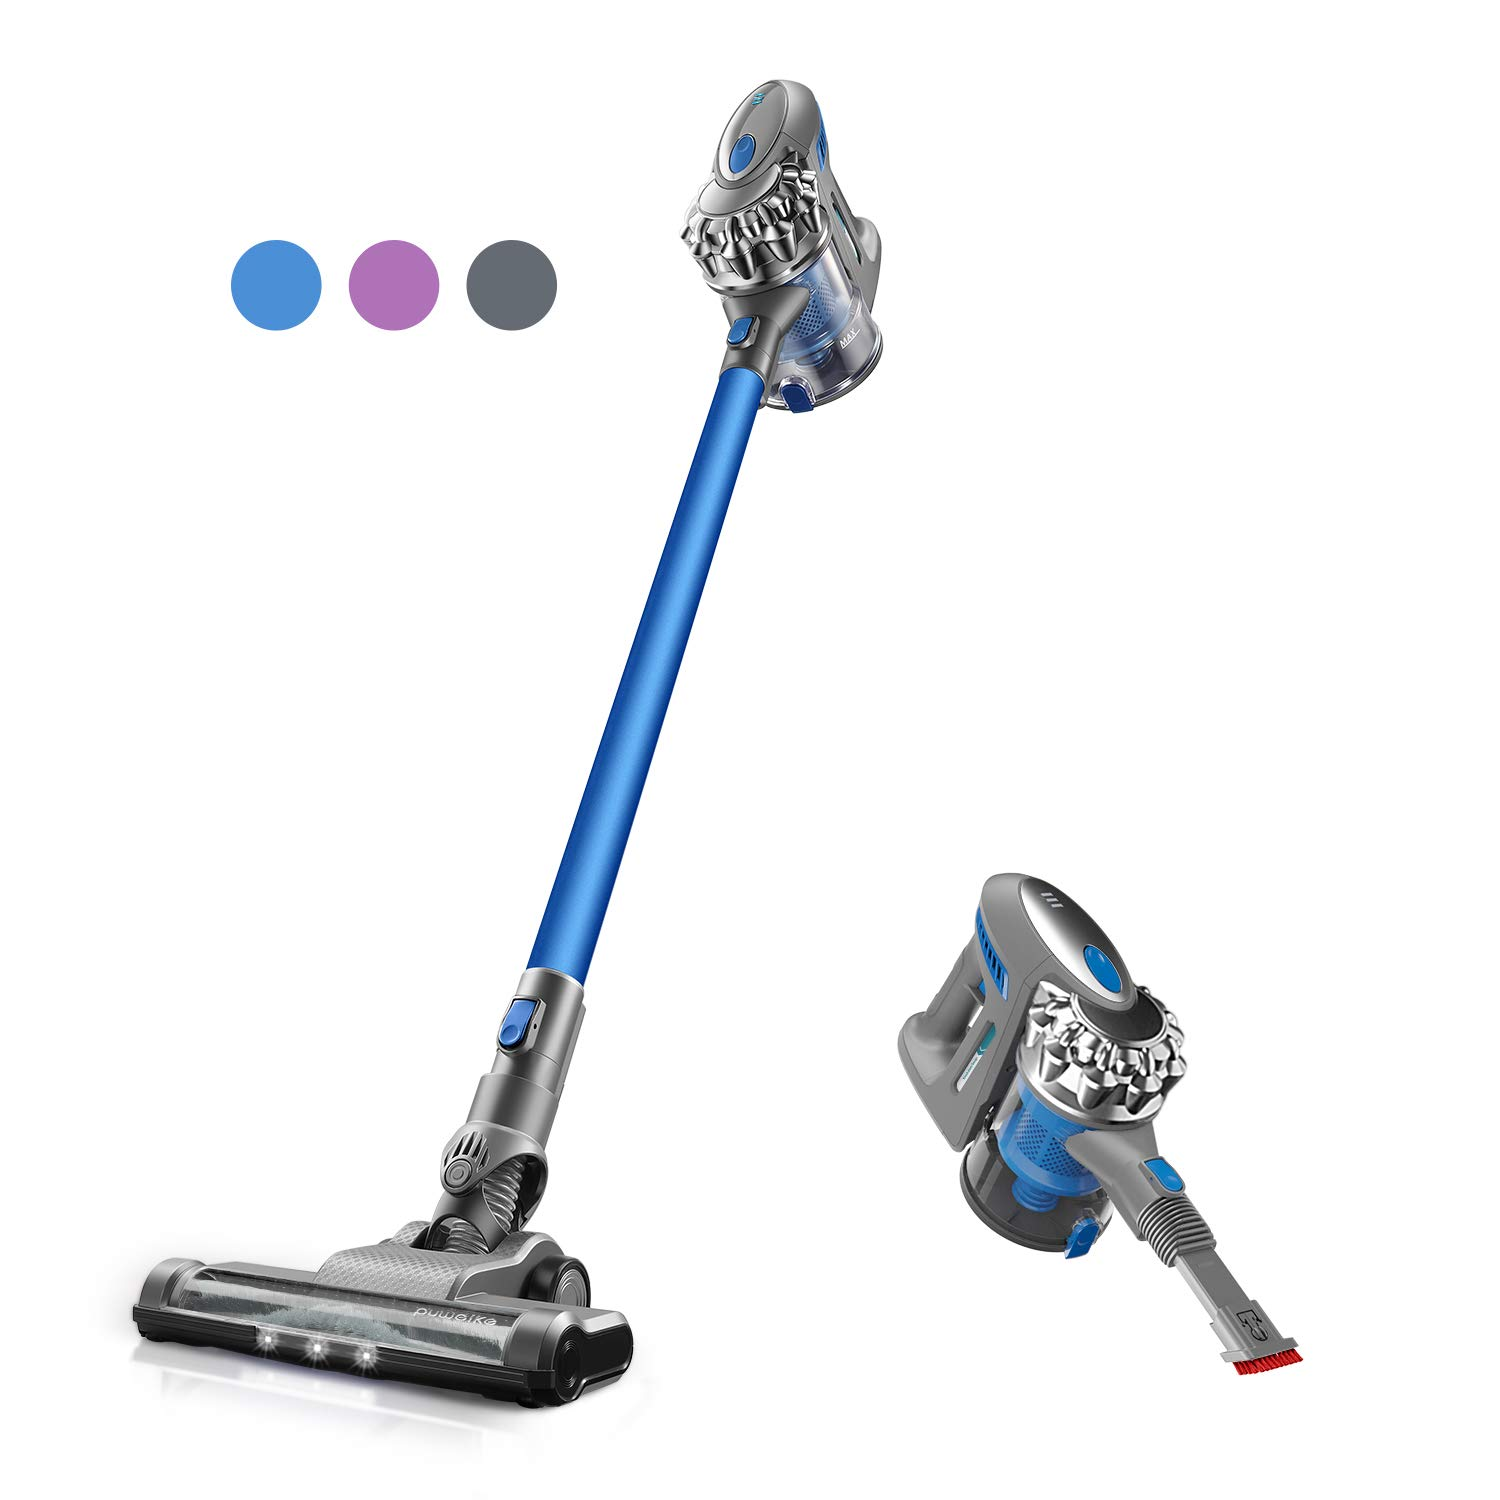 Puweike Cordless Stick Vacuum Cleaner - Hardwood Floors, Carpets and Pet Hair, Wireless Vacuum Cleaner 12Kpa Powerful Suction with Rechargeable Battery, 2 in 1 Design, P80 (Blue)